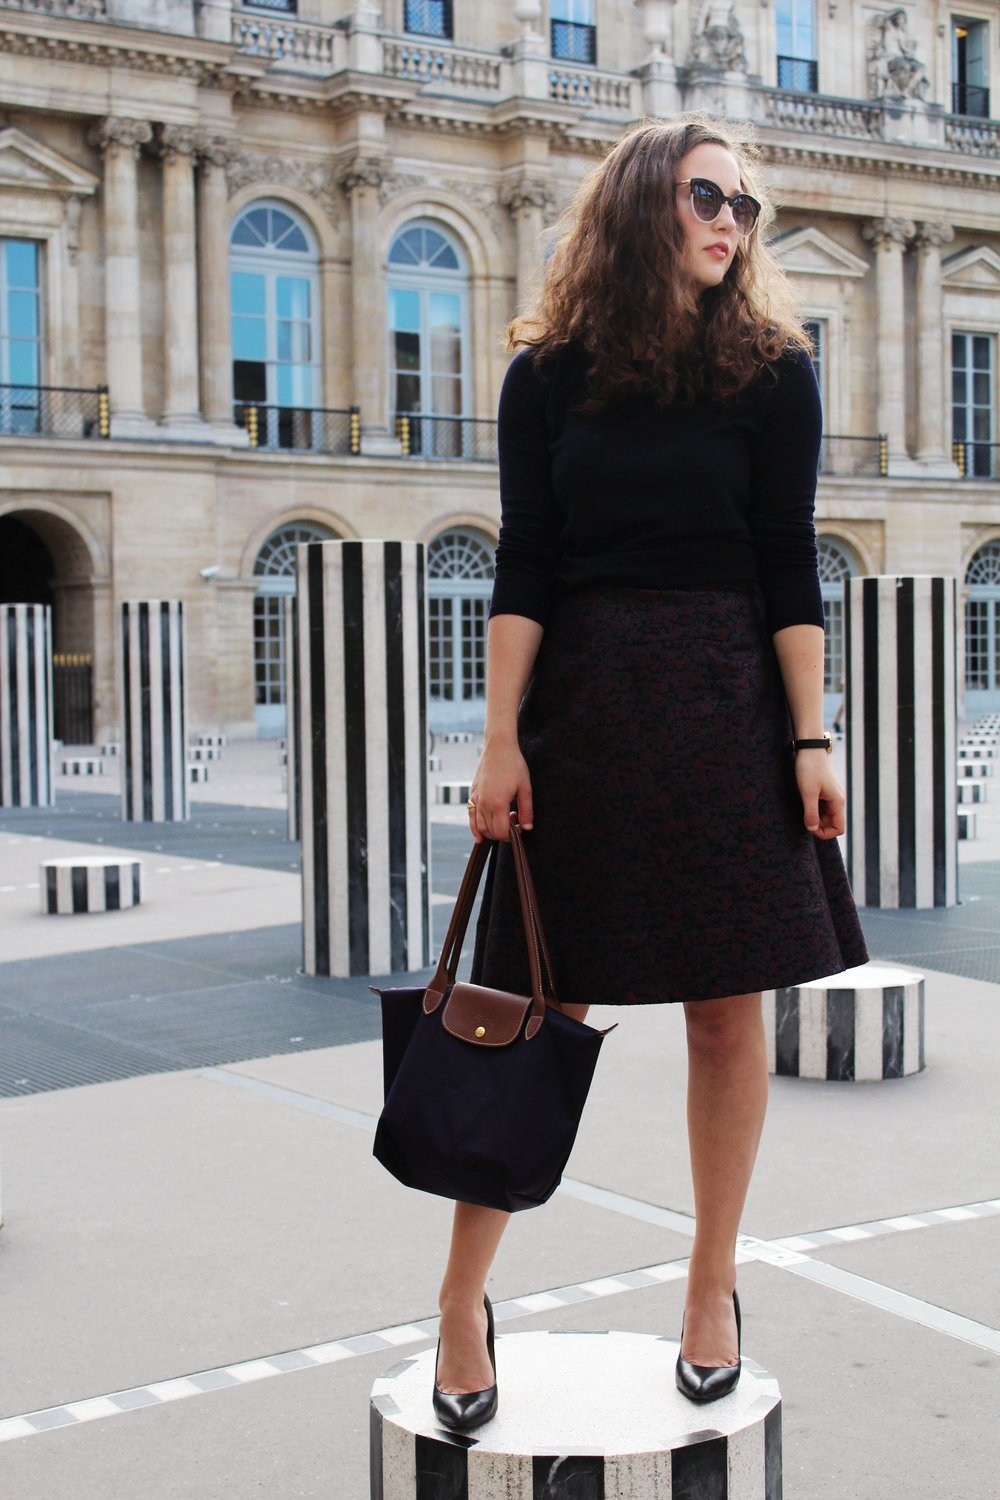 Ladylike Look Cady Quotidienne Paris Style.jpg